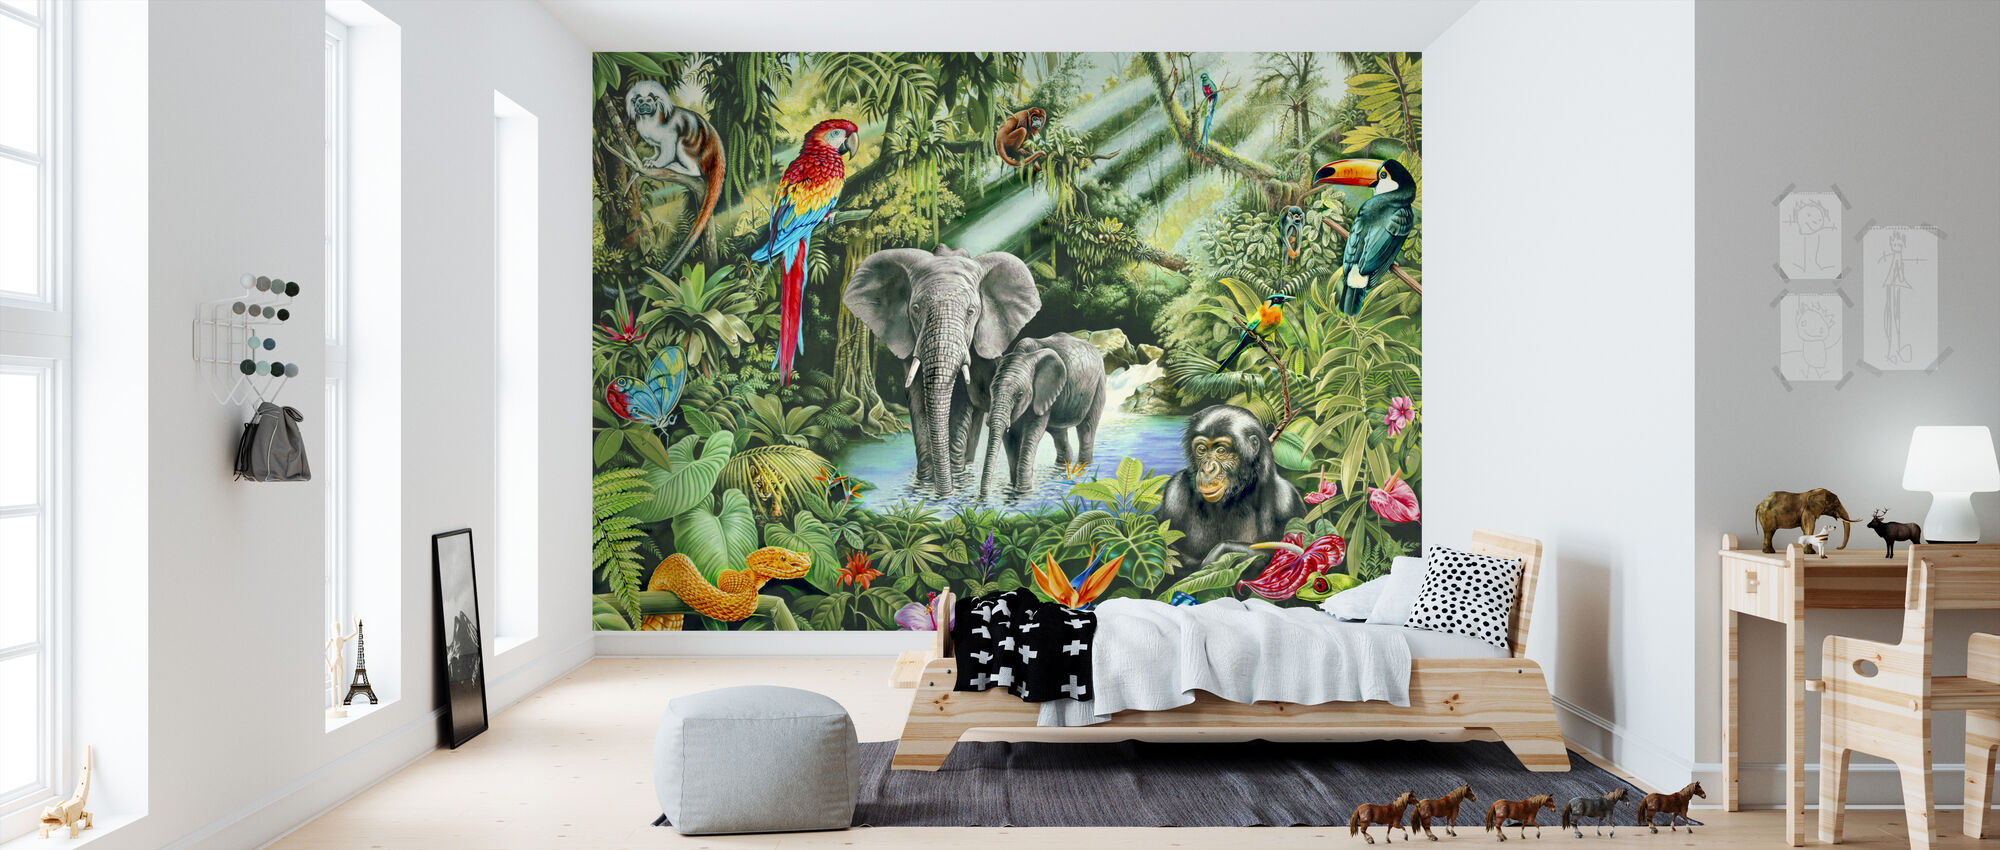 Jungle - Wallpaper - Kids Room